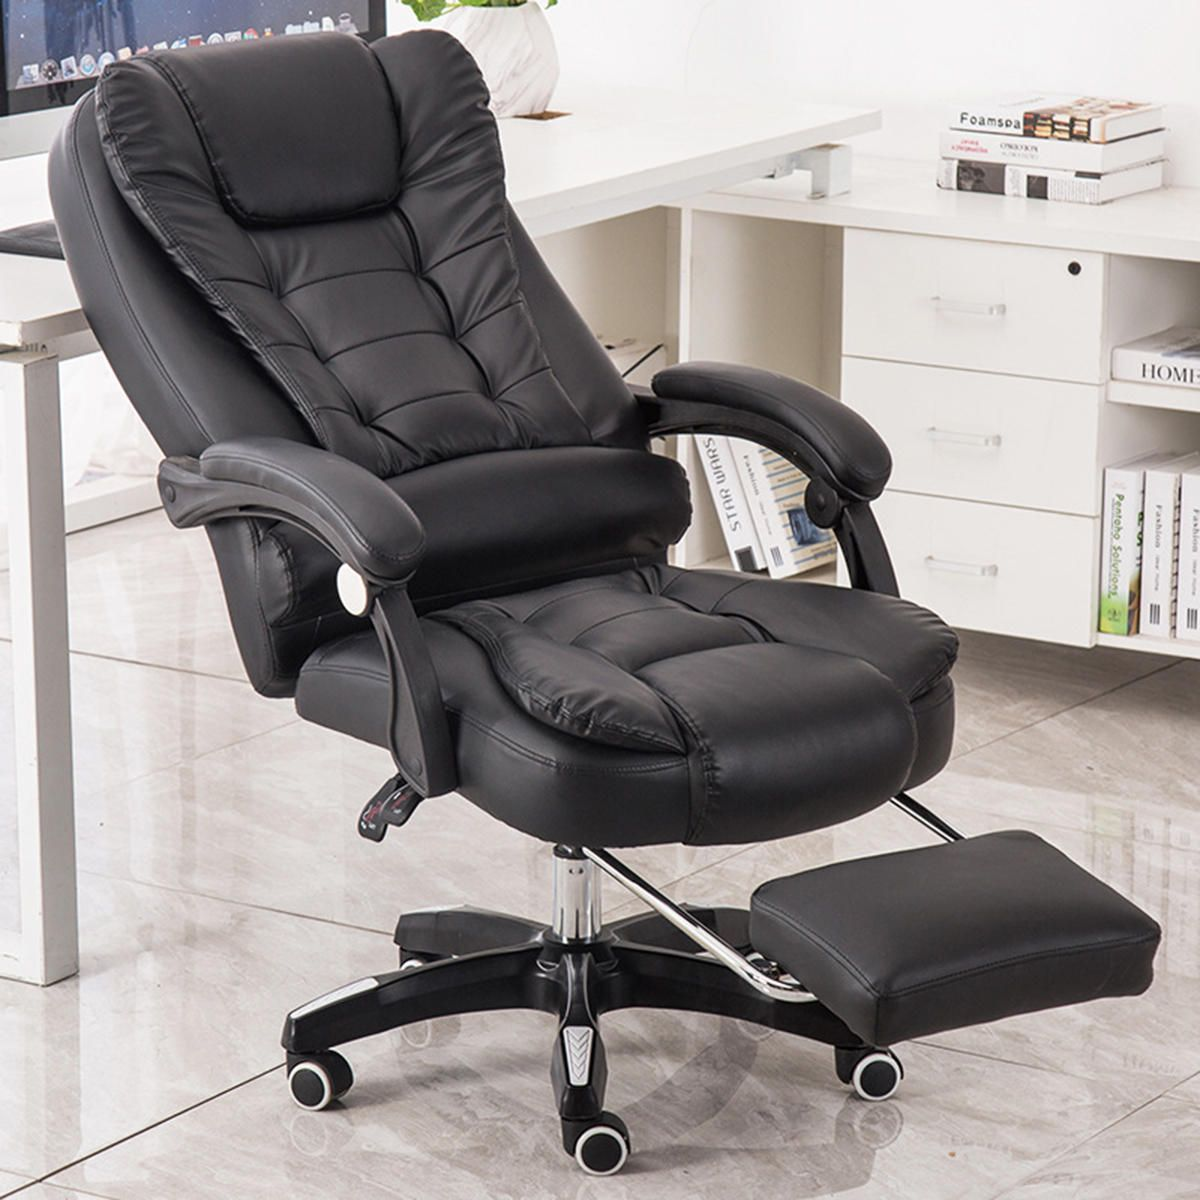 Ergonomic Office Chair Racing Gaming Chair HighBack PU